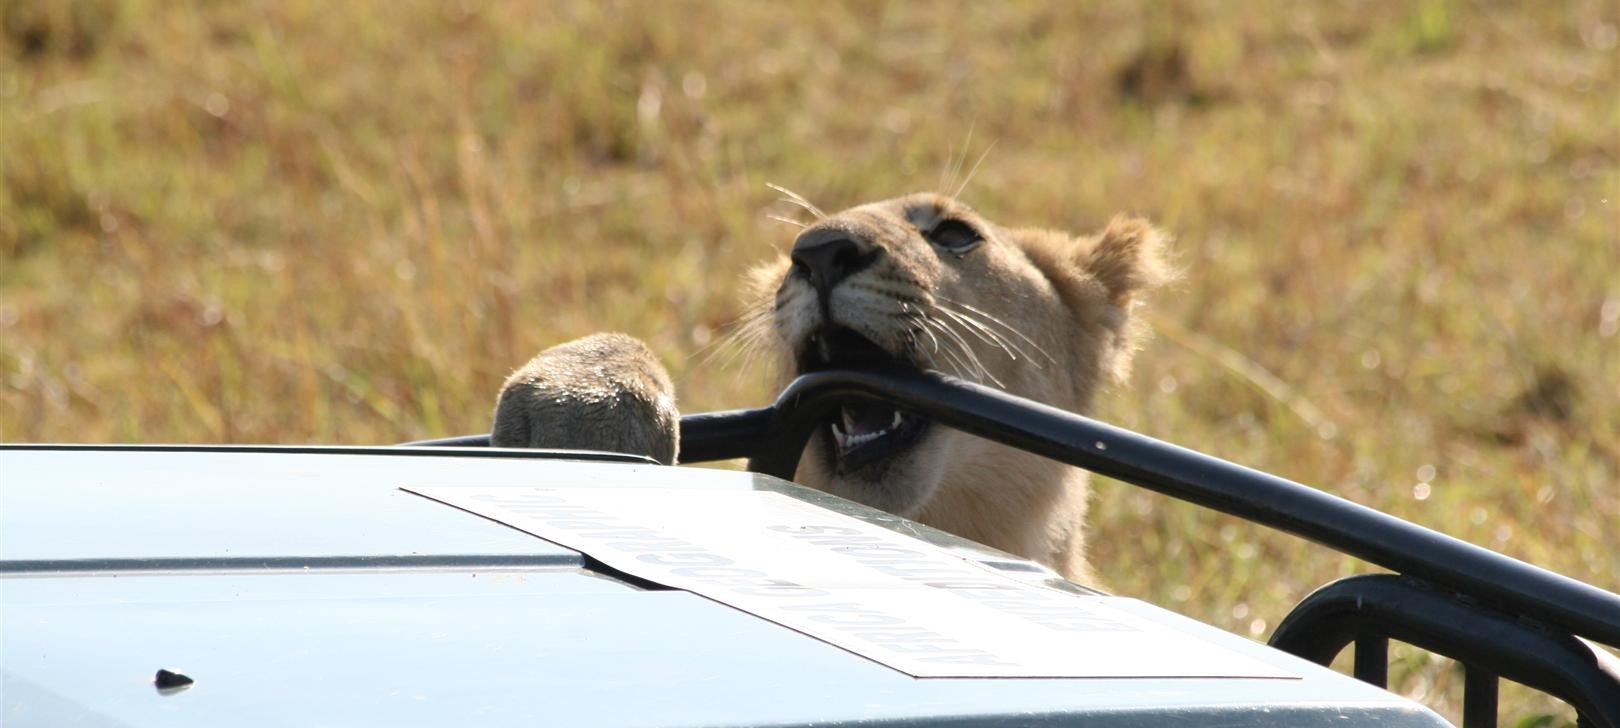 Mara lion sampling car (photo by Steward Shang)